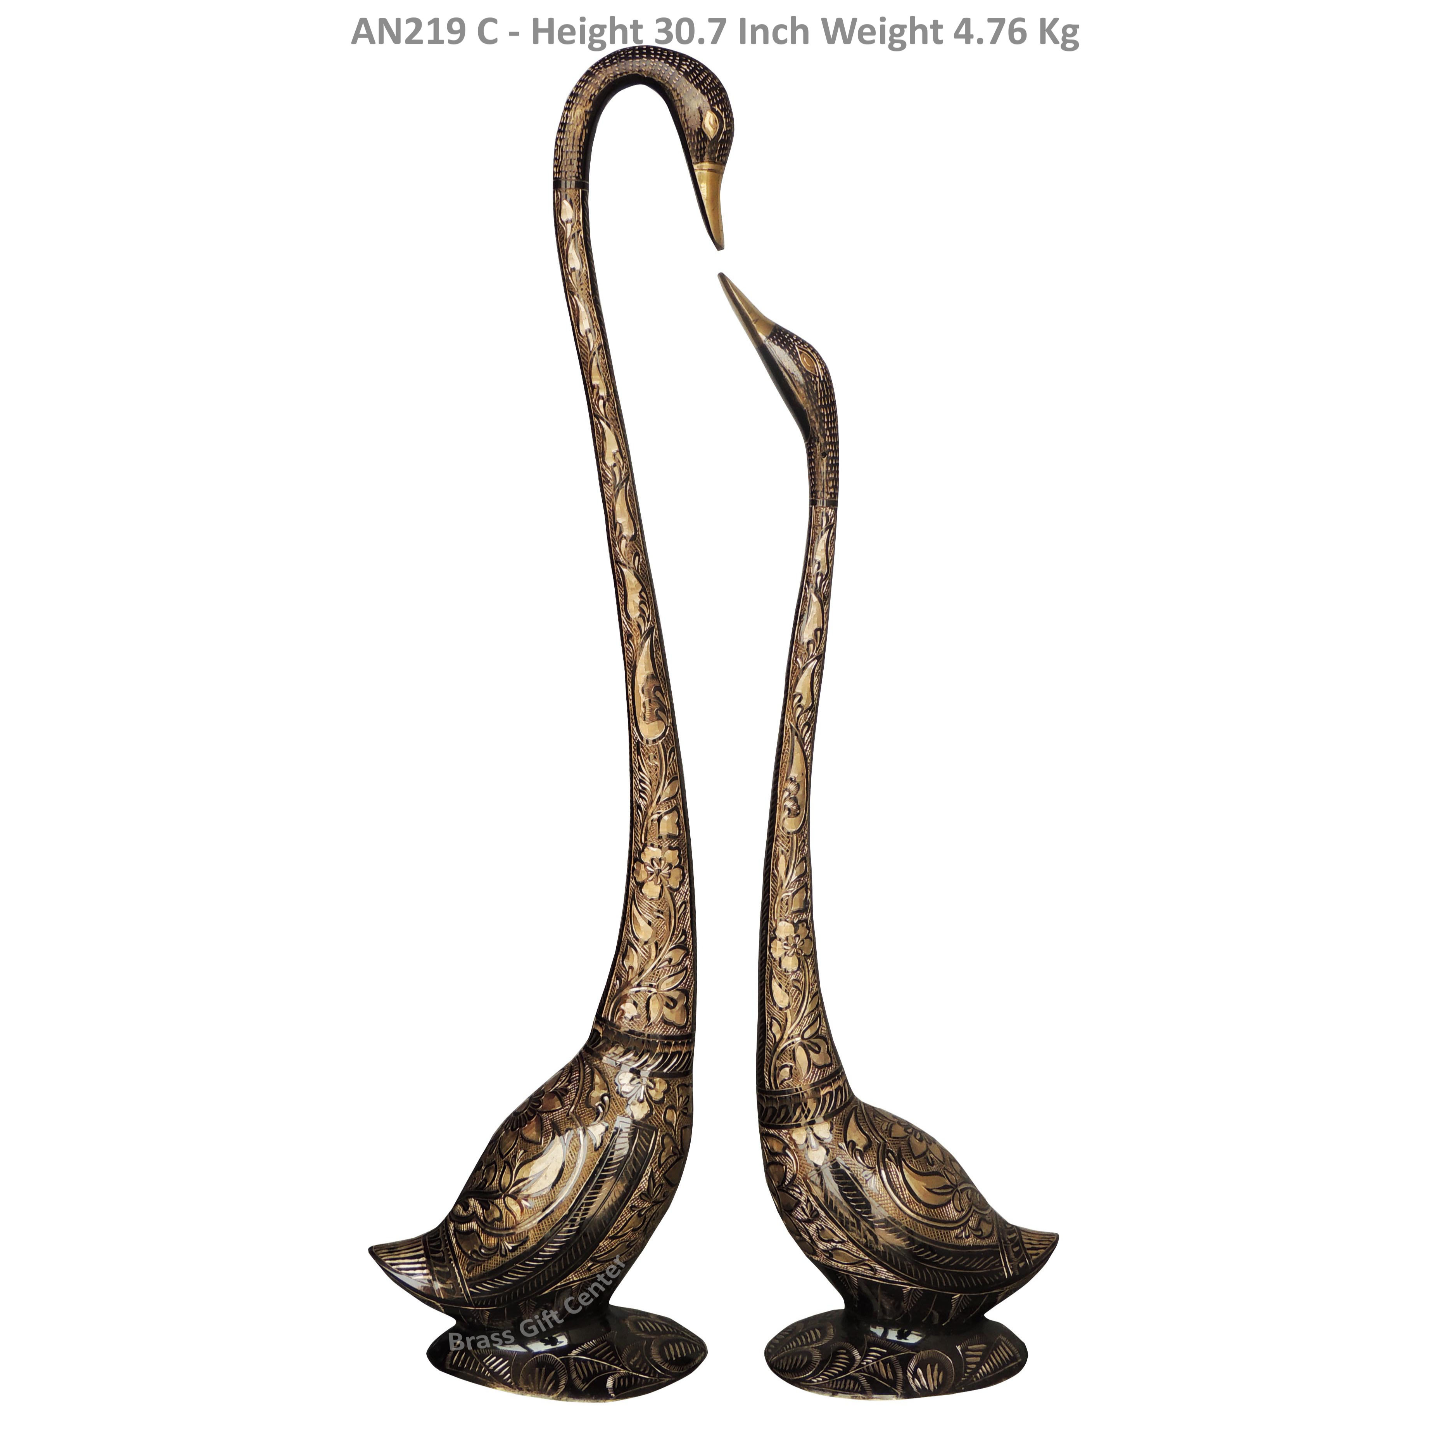 Brass Showpiece Duck Pair With Steel Finish Height - 30.7 Inch AN219 C